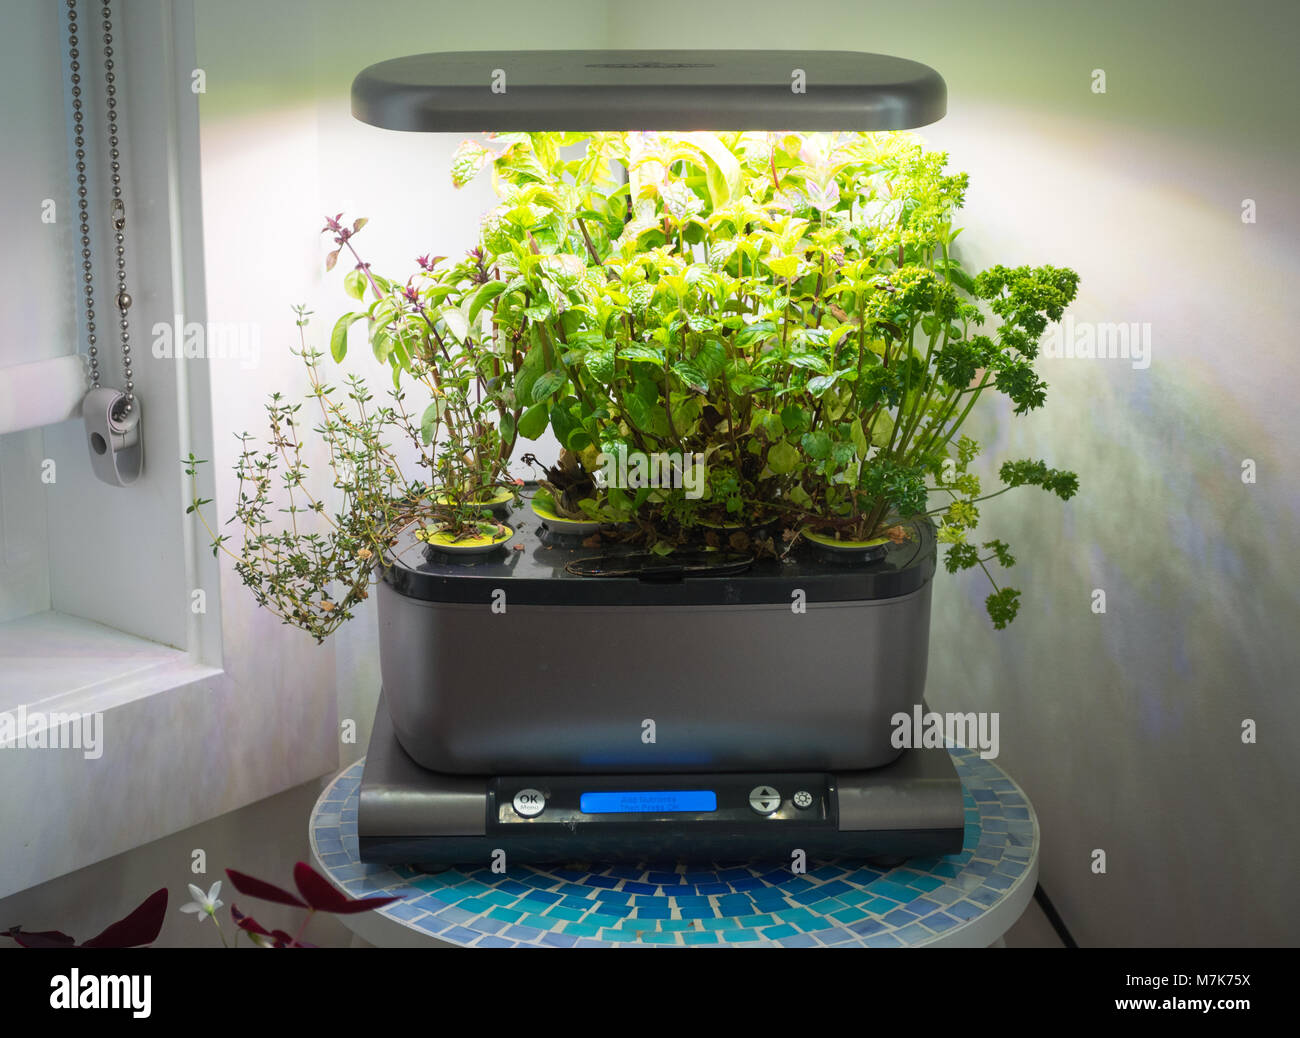 An Miracle-Gro AeroGarden, a popular home indoor garden that uses hydroponics to grow herbs and vegetables. - Stock Image